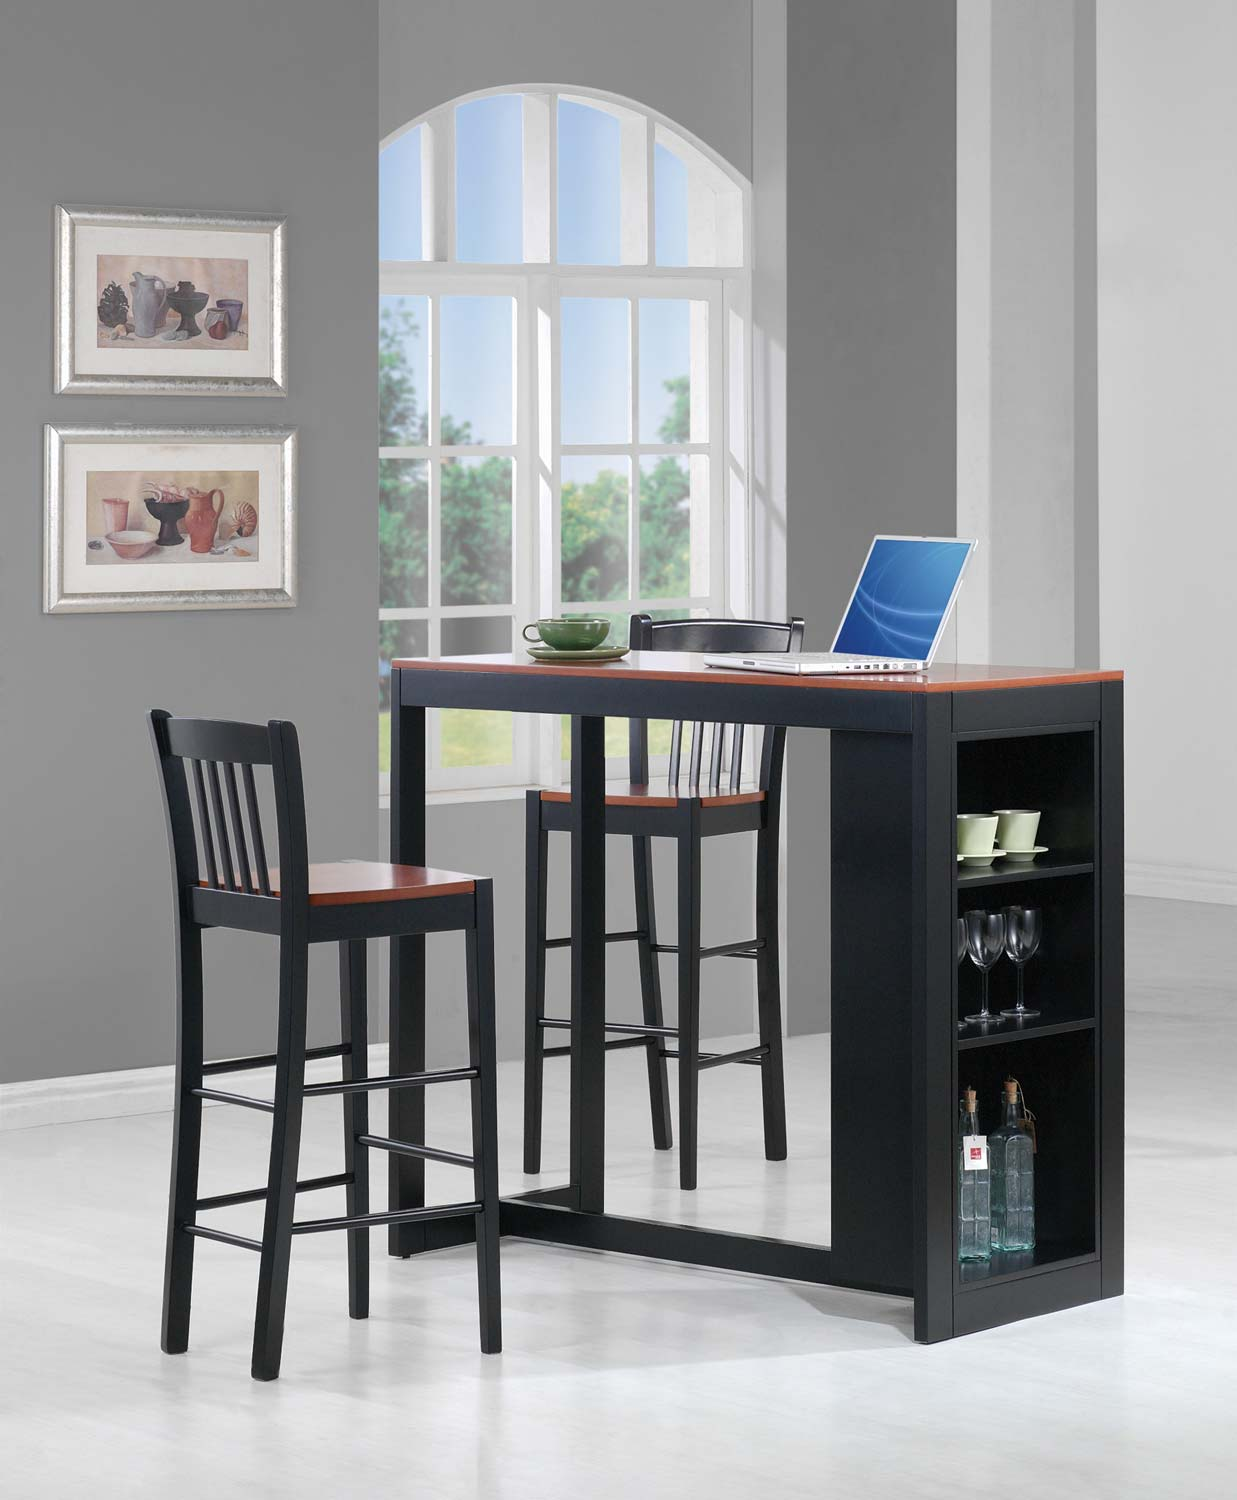 Coaster 101068 3PC Counter Height Dining Set - Black